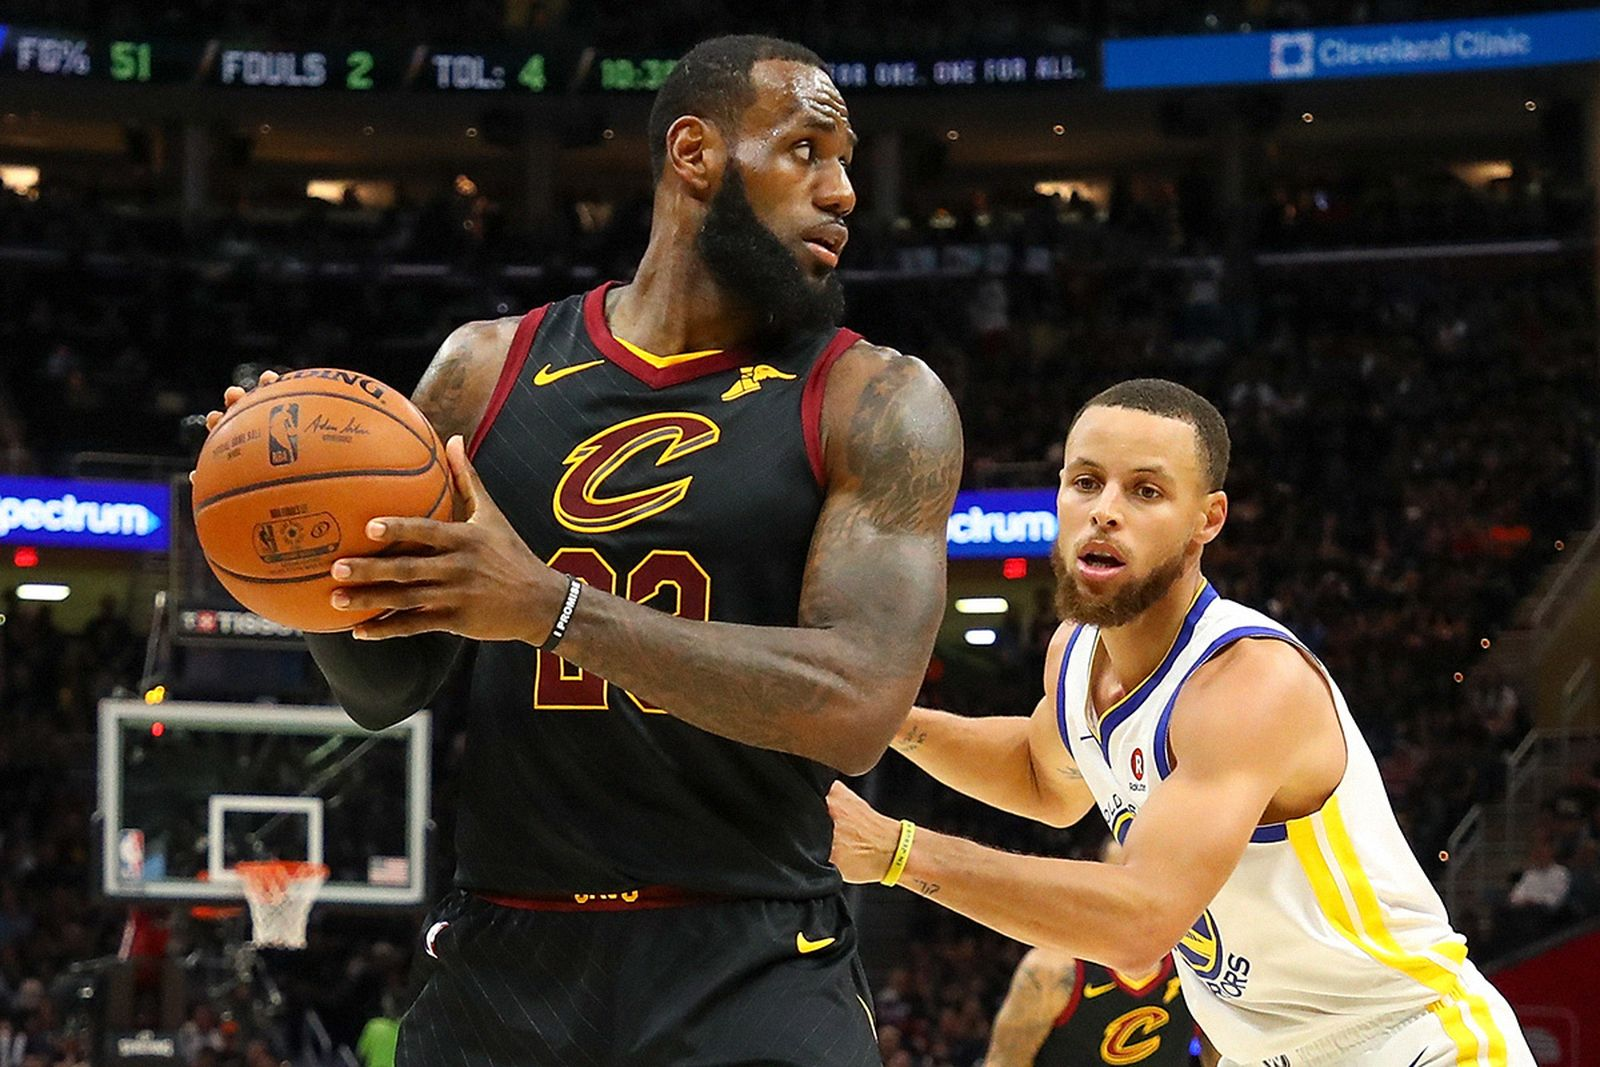 lebron james production company play part signing lakers la lakers nba